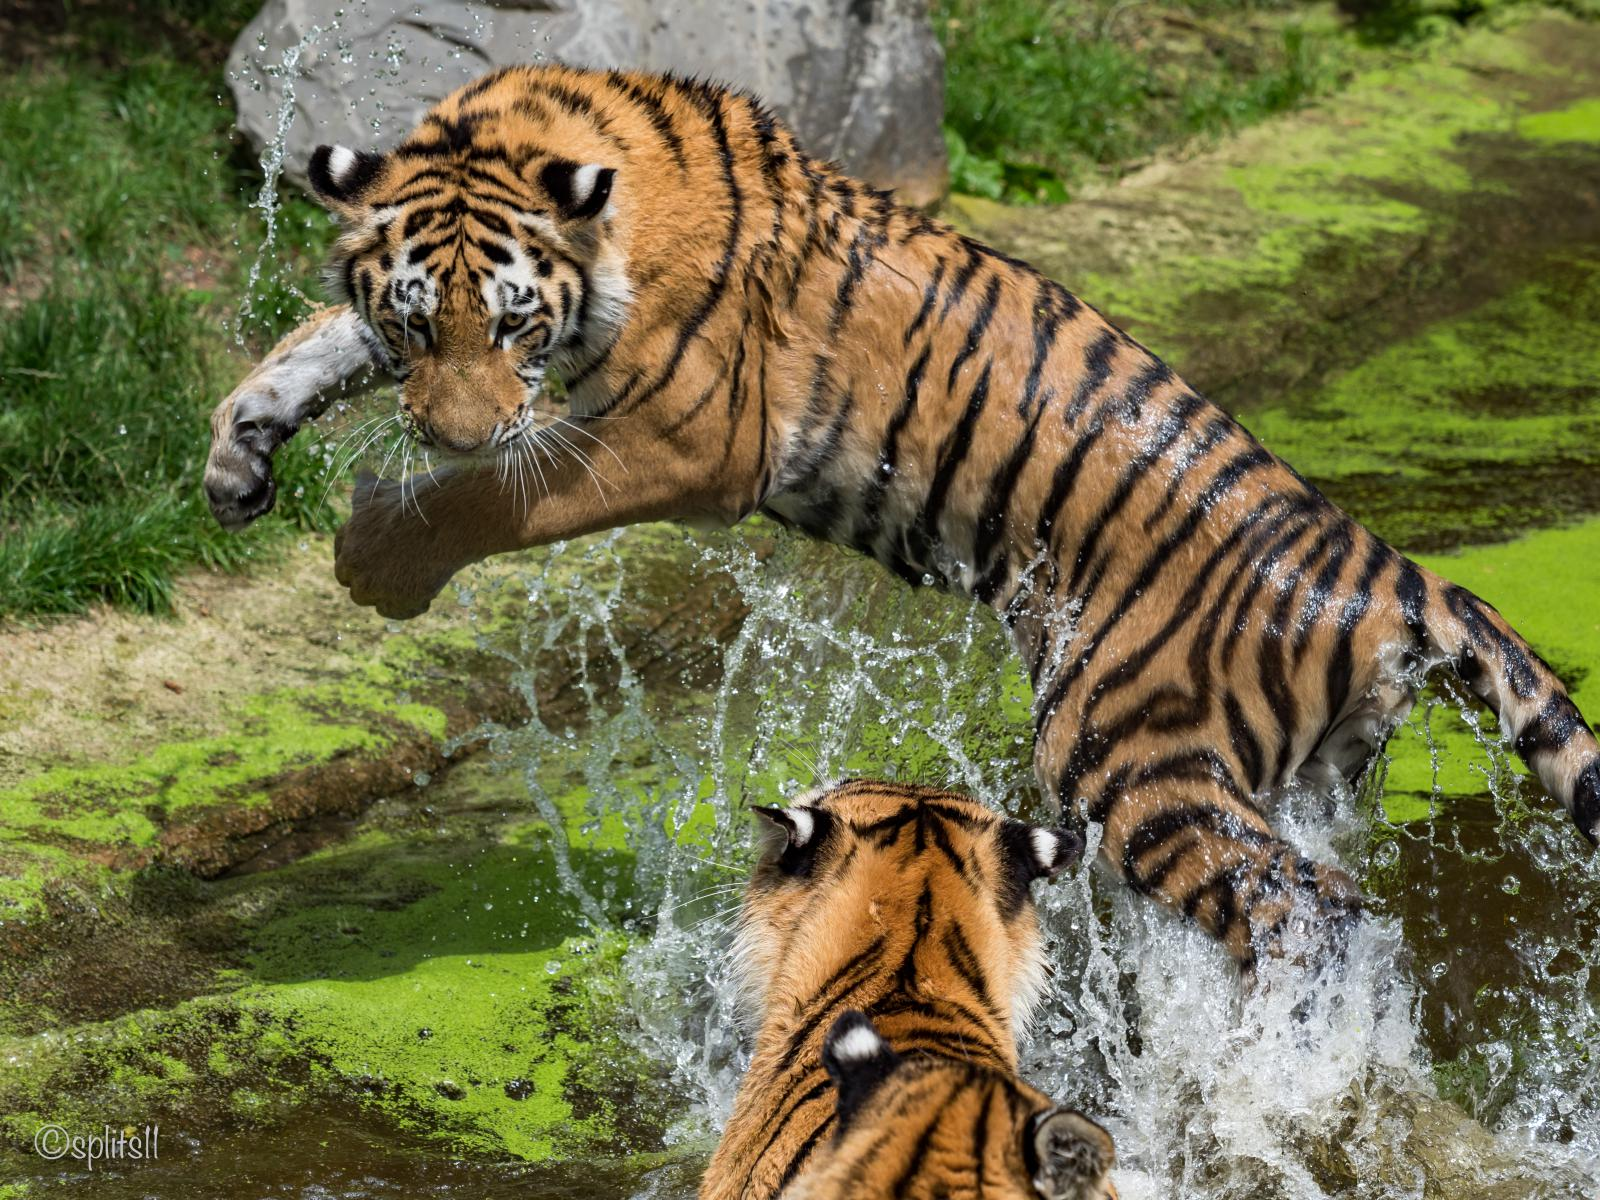 Tigers in the Zoo